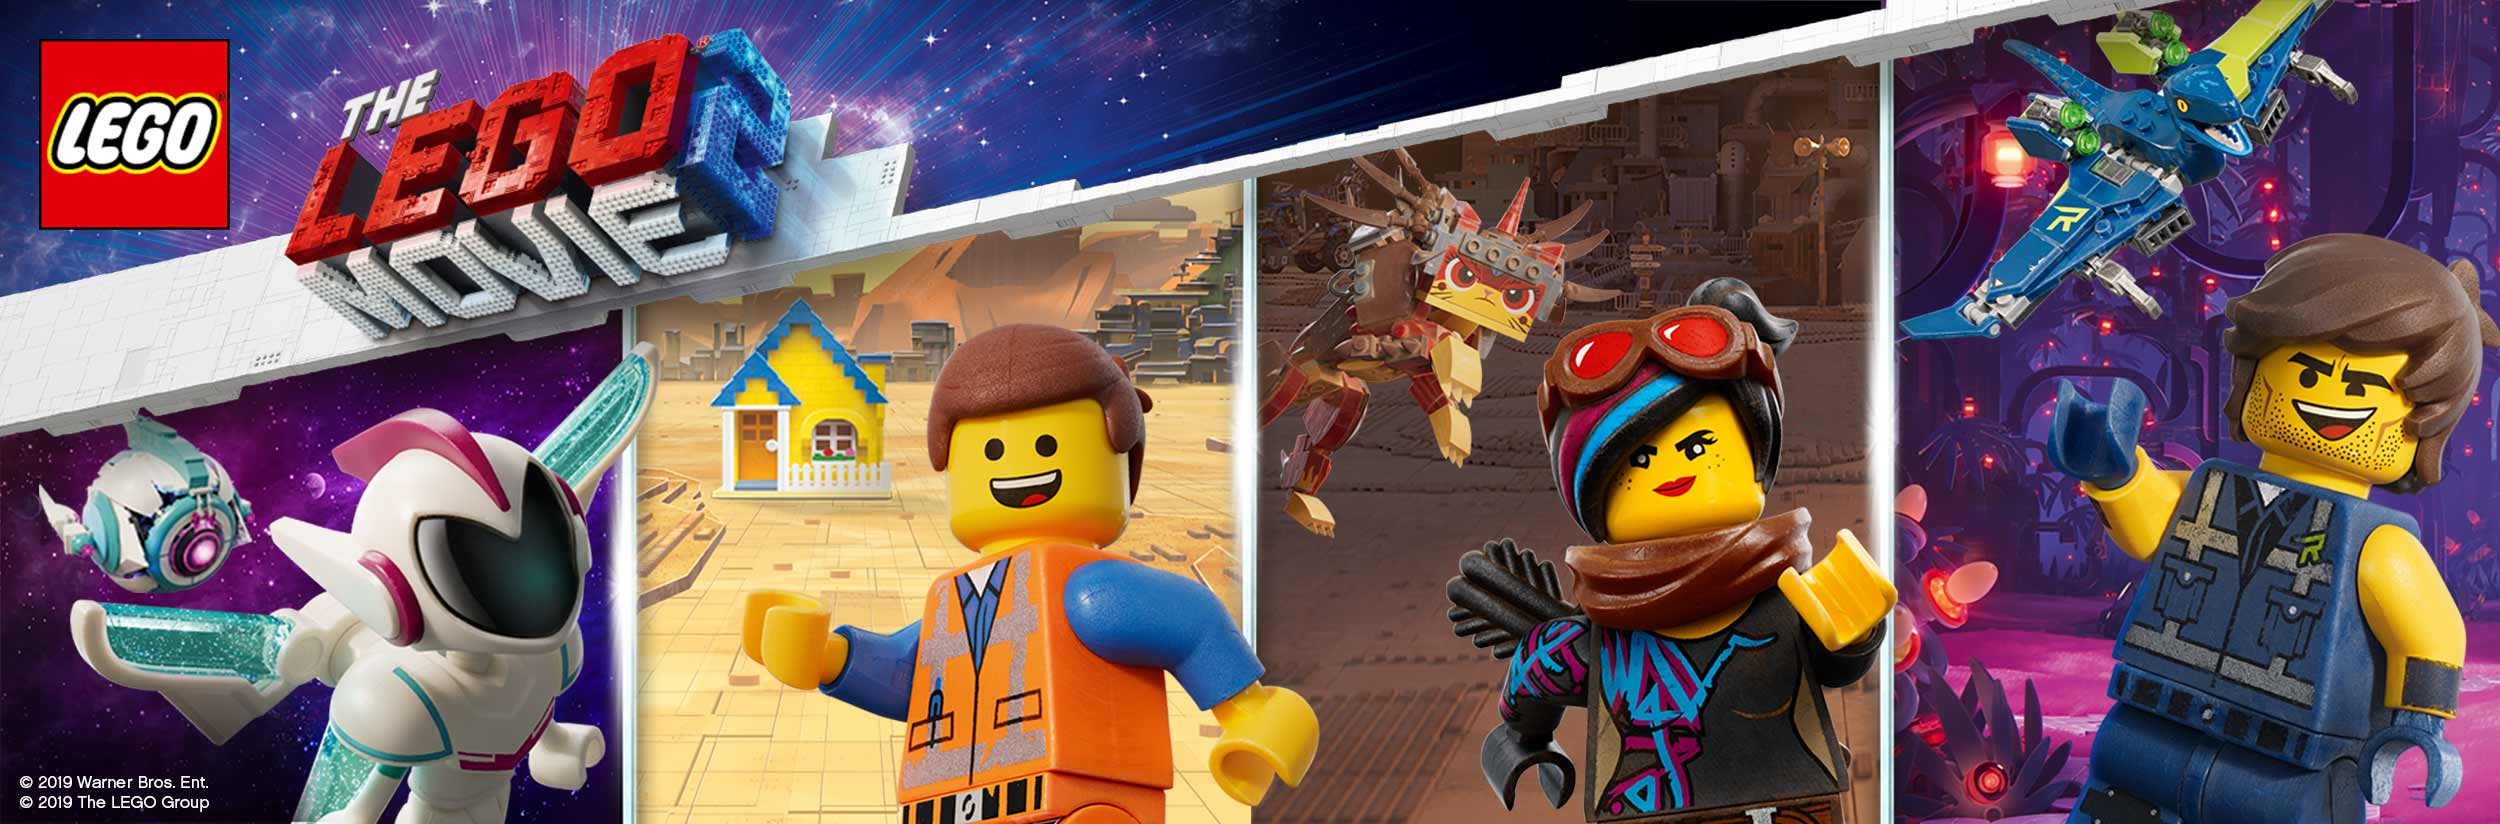 The Lego Movie 2 bei VEDES